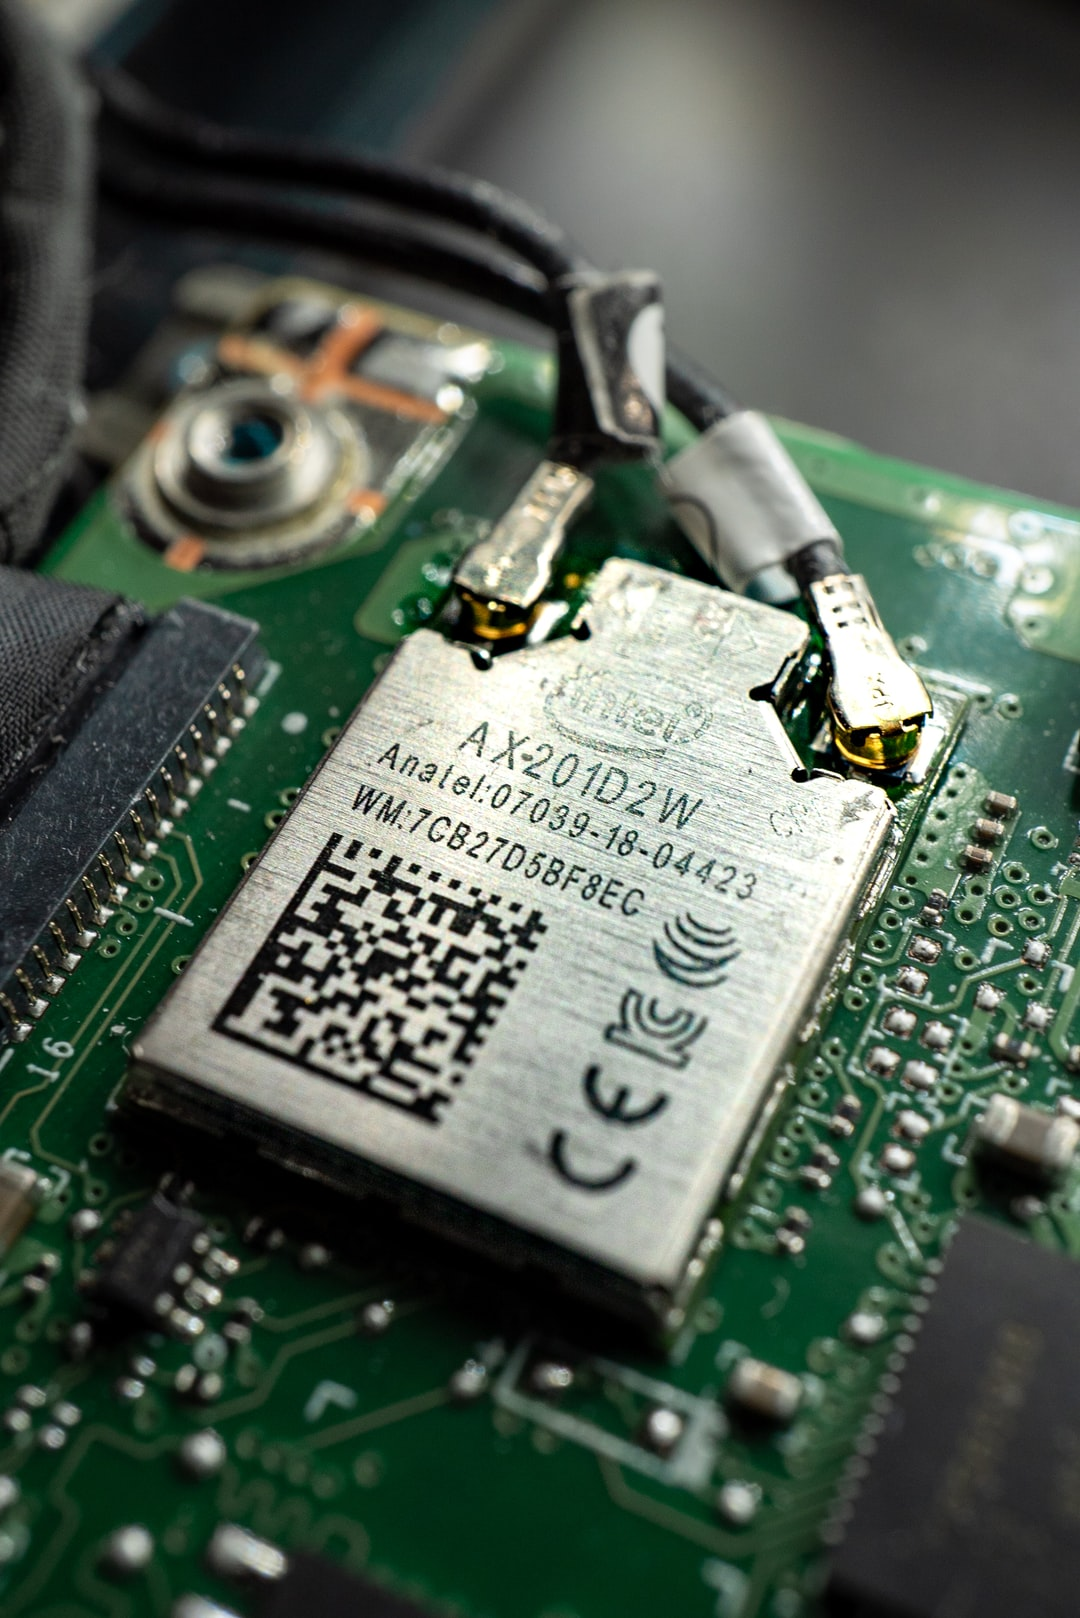 A WiFi 6 card, soldered onto a mainboard of a sleek ultrabook. This chip is produced by Intel and sports 2.4 as well as 5 GHz antennas.